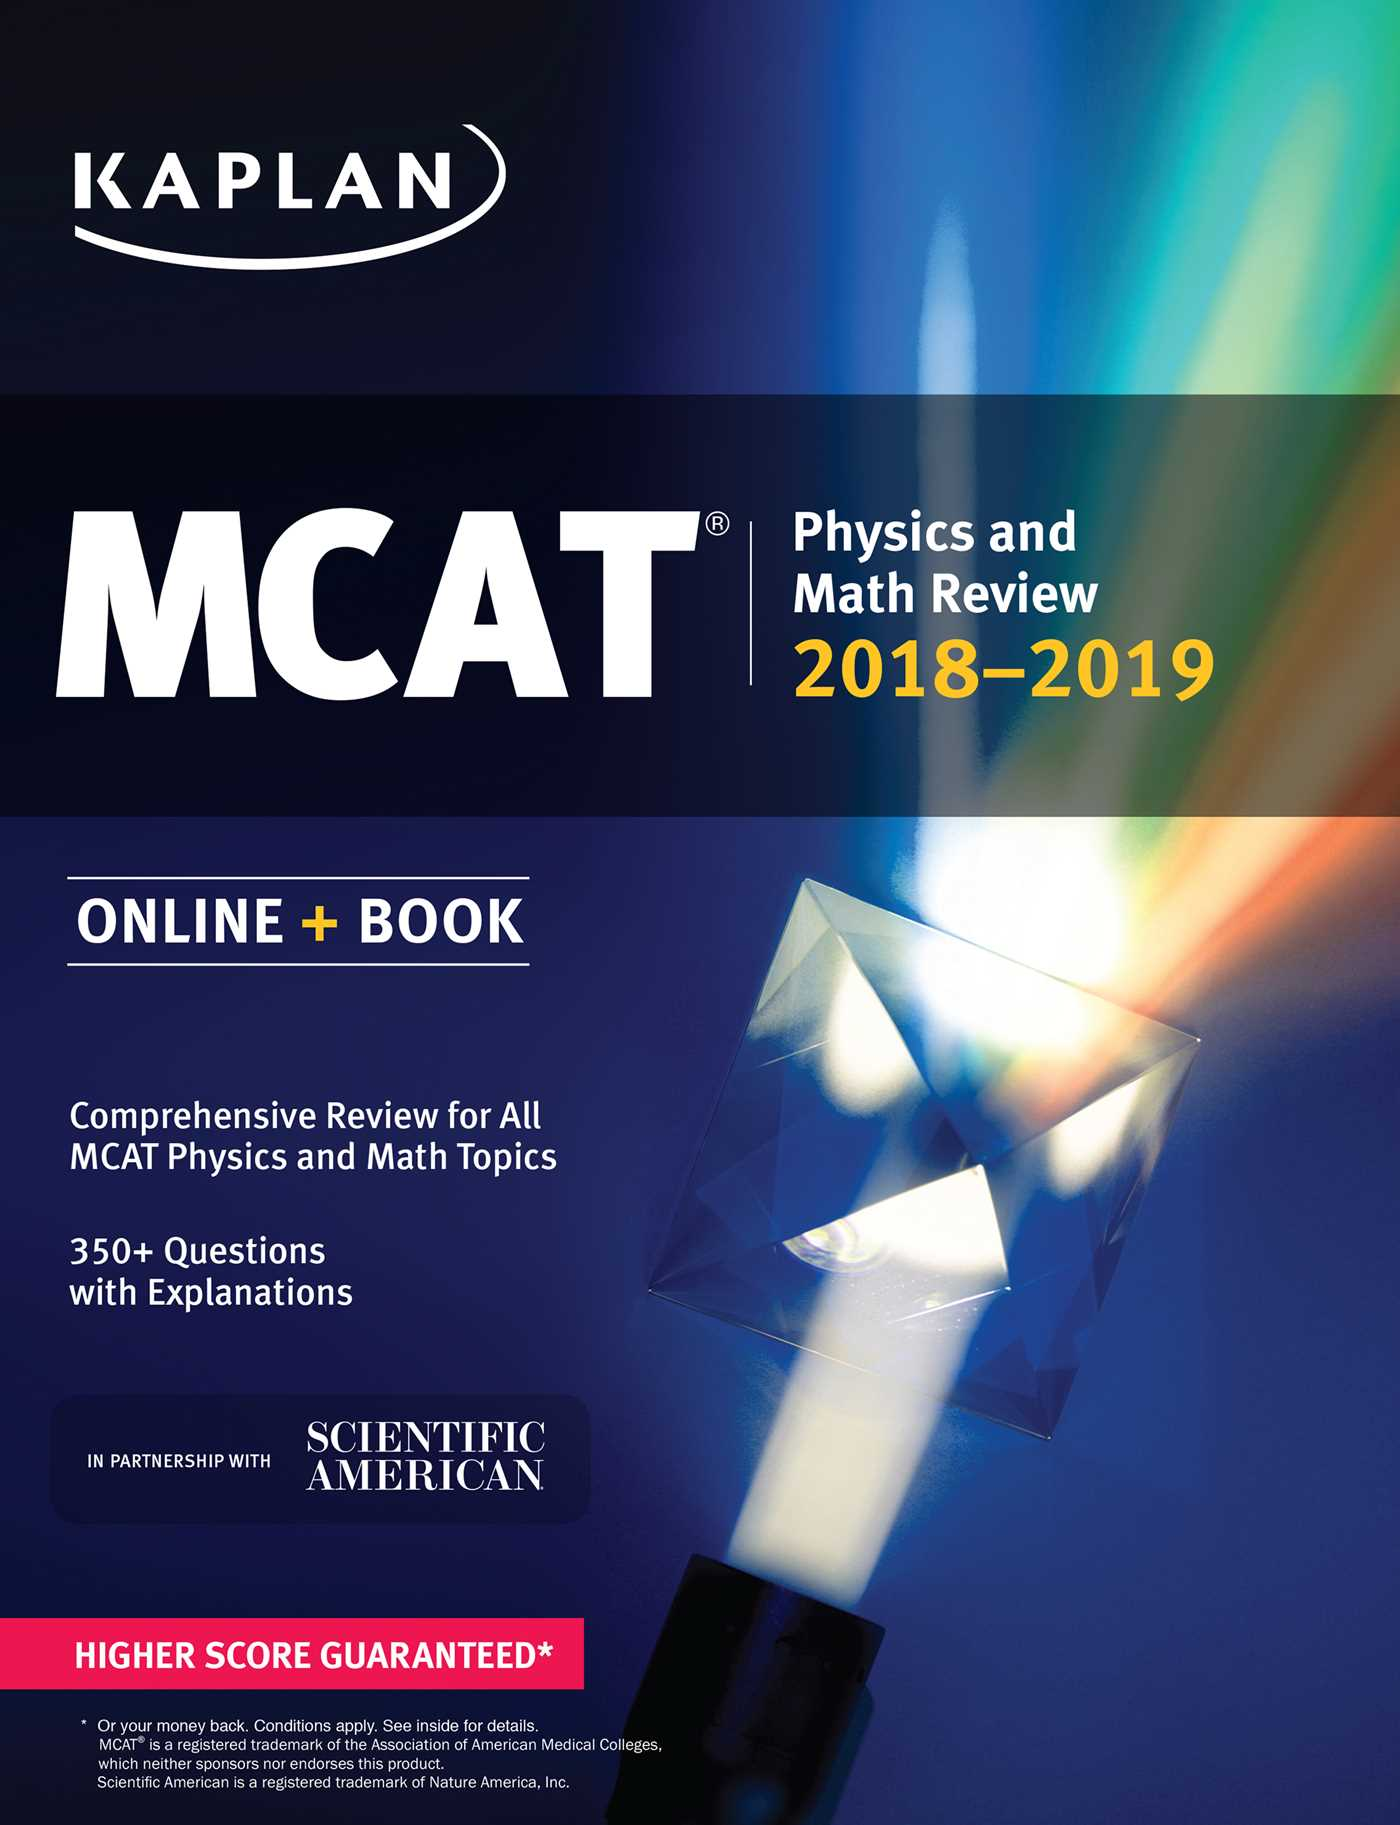 Mcat Physics And Math Review Online Book